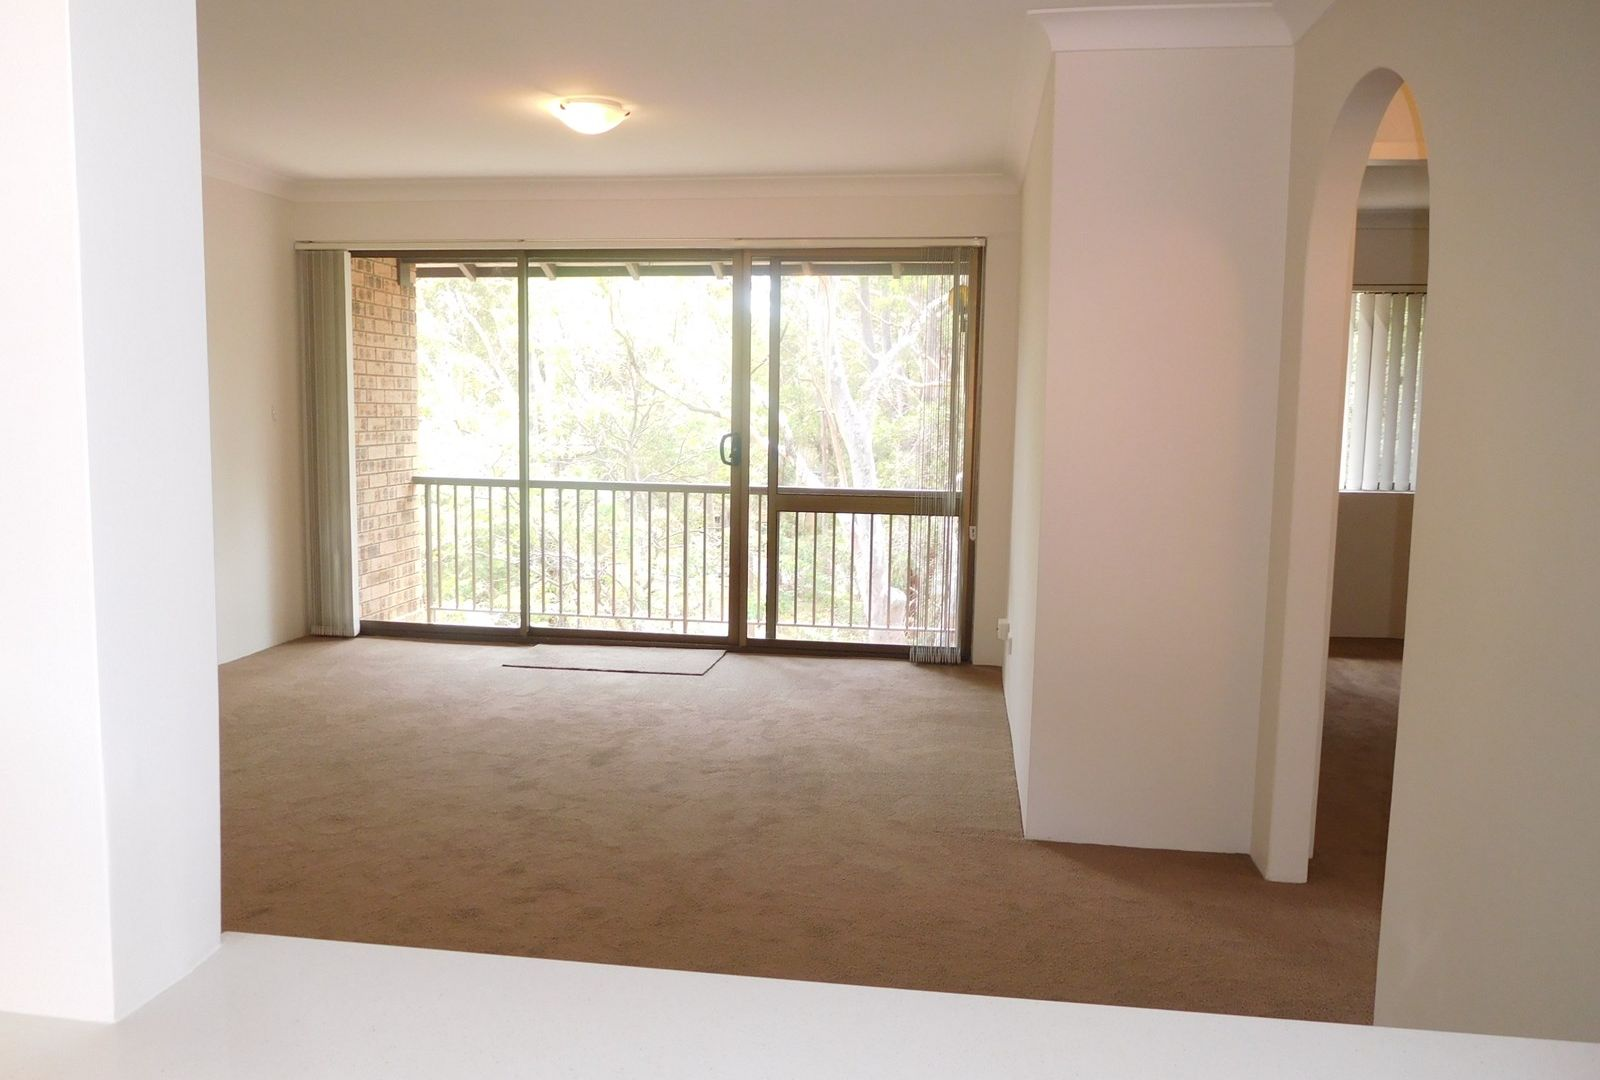 21/25-27 Fontenoy Road, Macquarie Park NSW 2113, Image 1